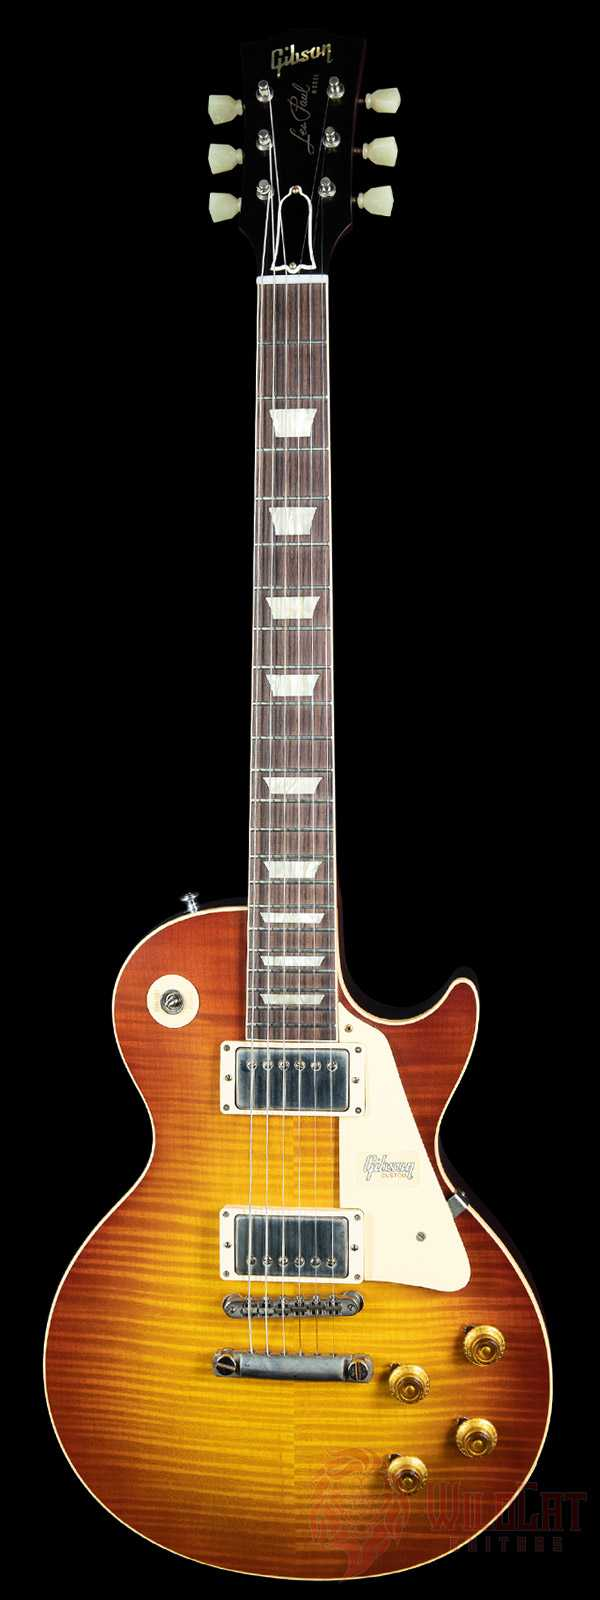 Gibson Custom Shop 60th Anniversary 1959 Les Paul Standard VOS Sunrise Tea Burst